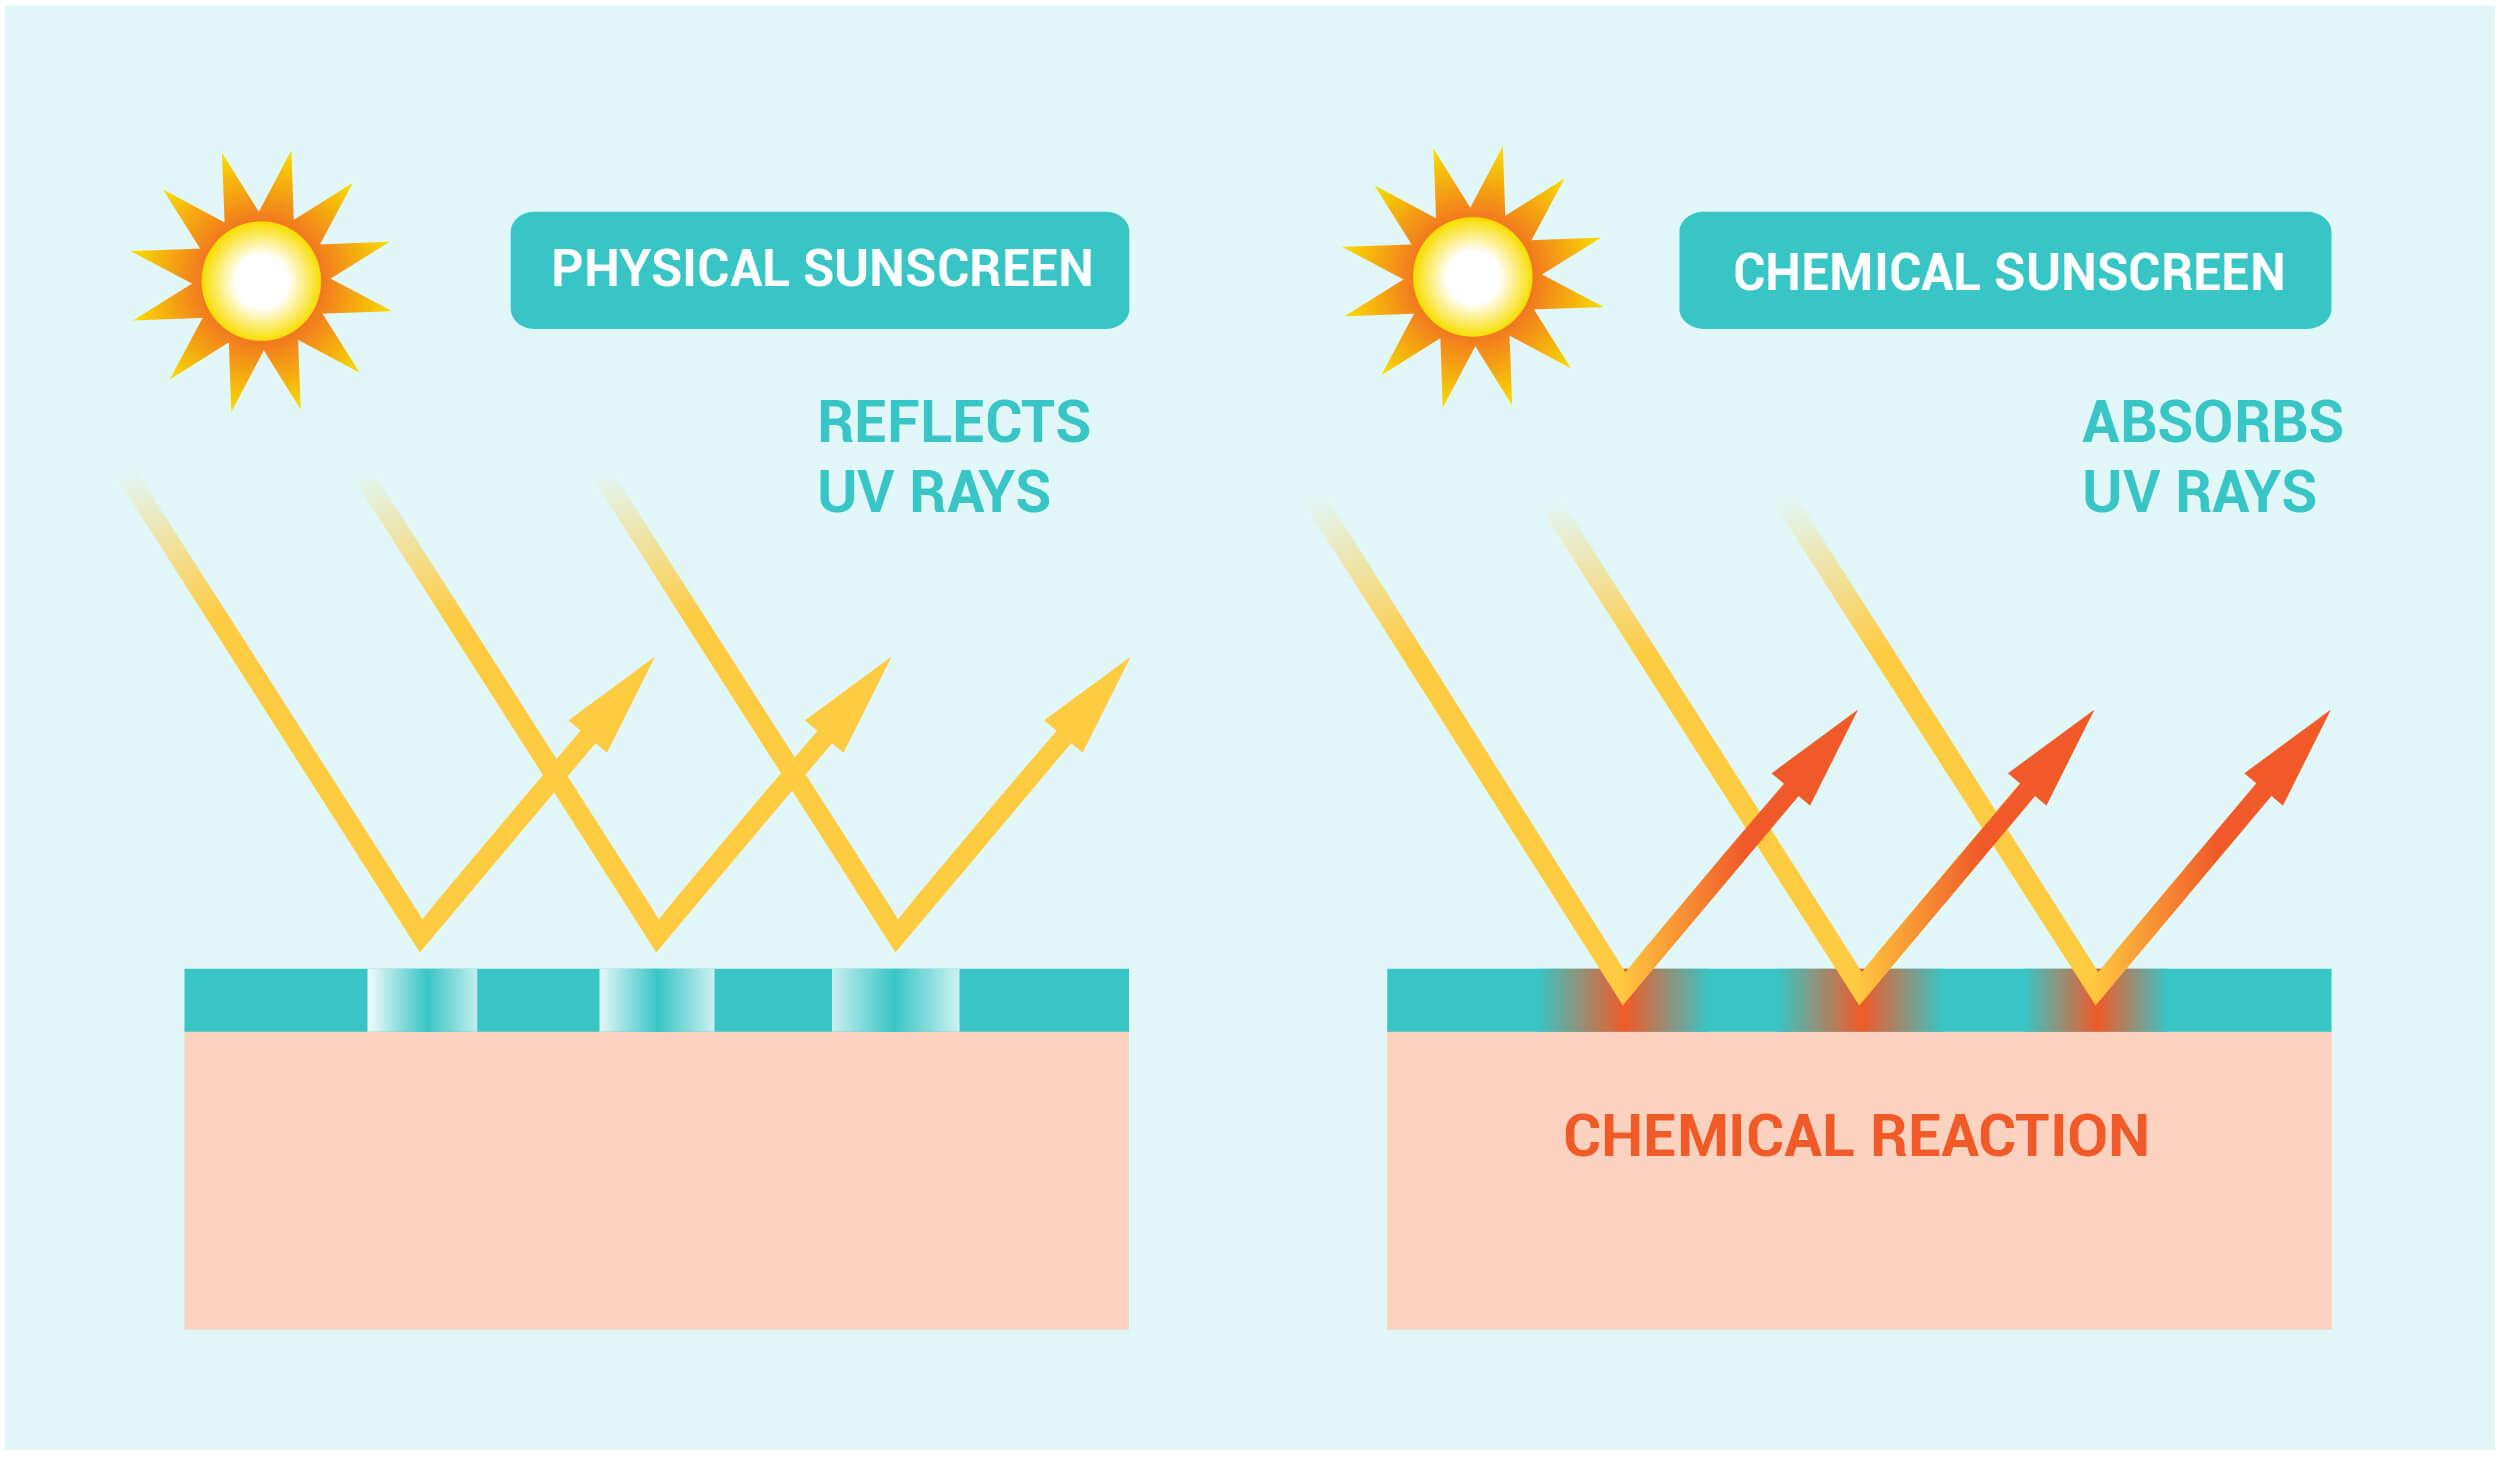 Infographic showing the difference between physical and chemical sunscreens